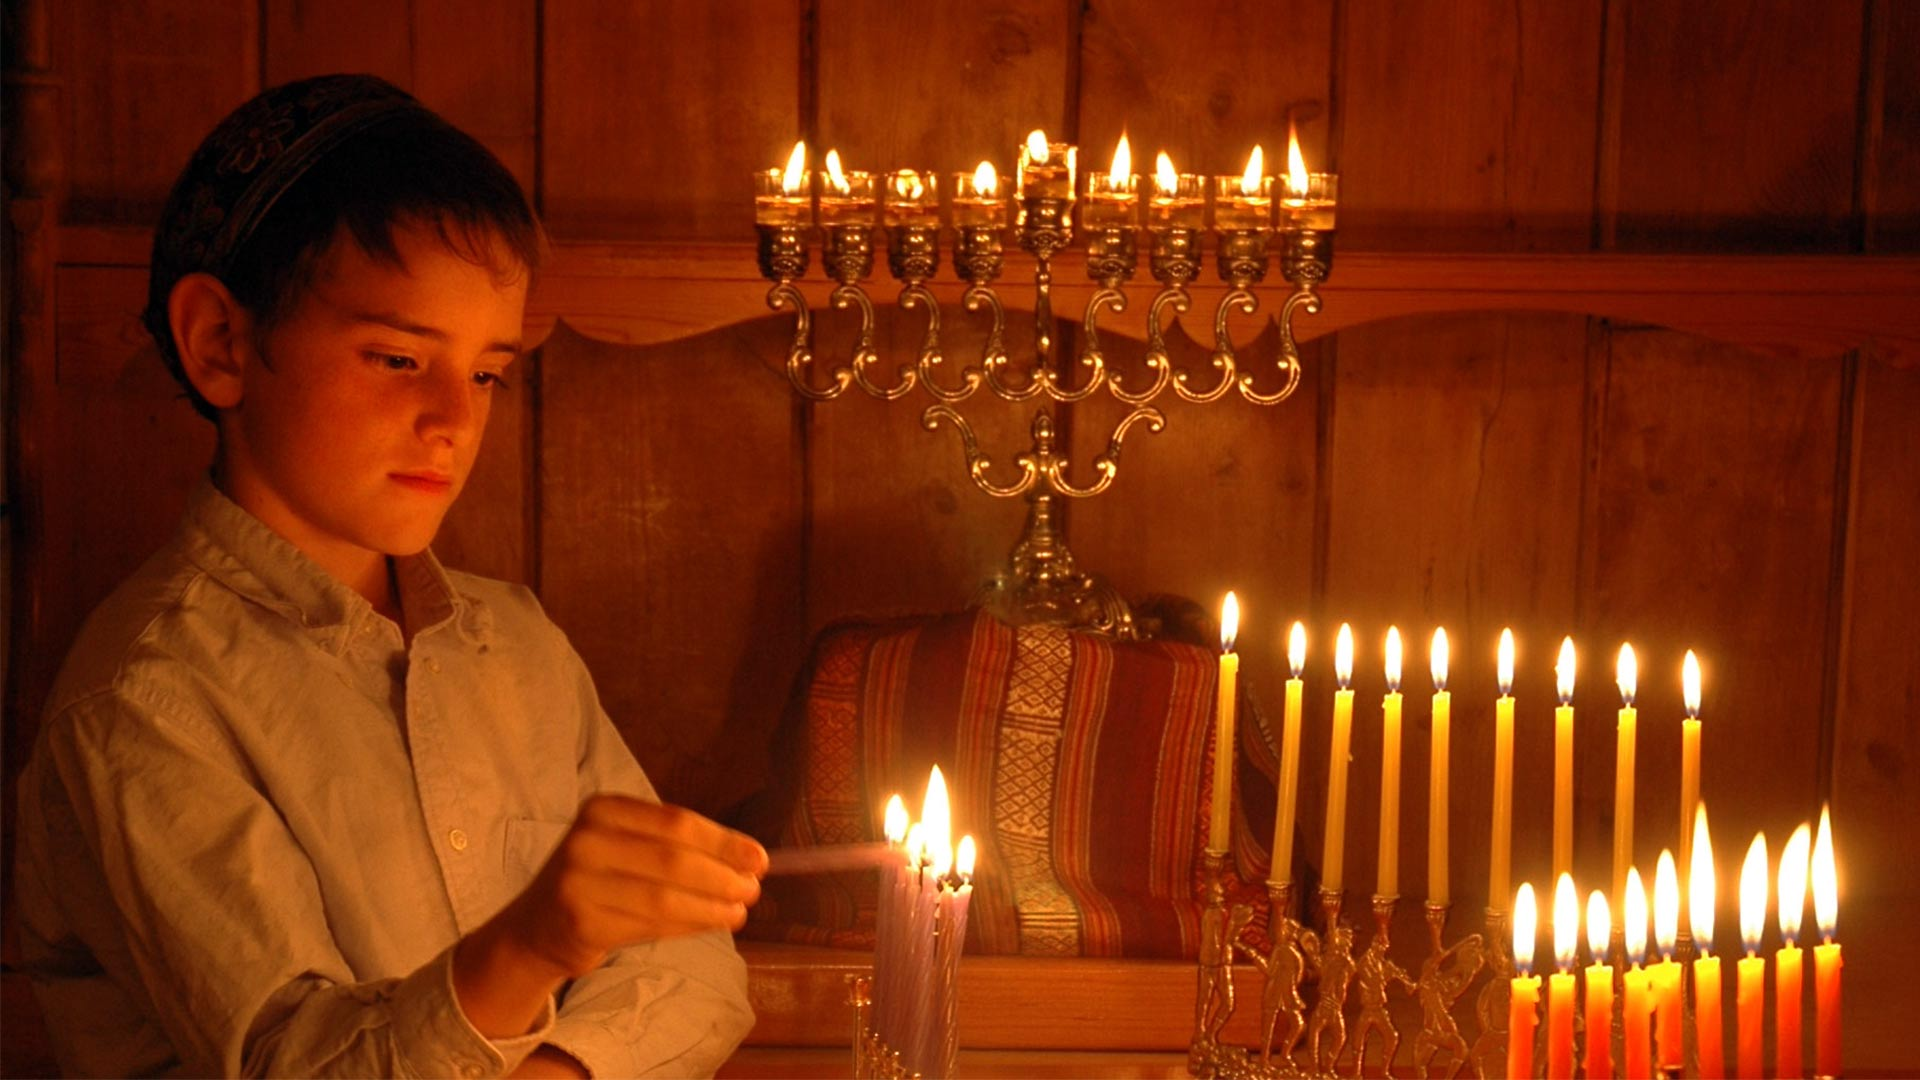 HANUKKAH: A FESTIVAL OF DELIGHTS examines the traditions at the center of the Jewish holiday of Hanukkah, including lighting candles for eight nights on the lamp known as a menorah.